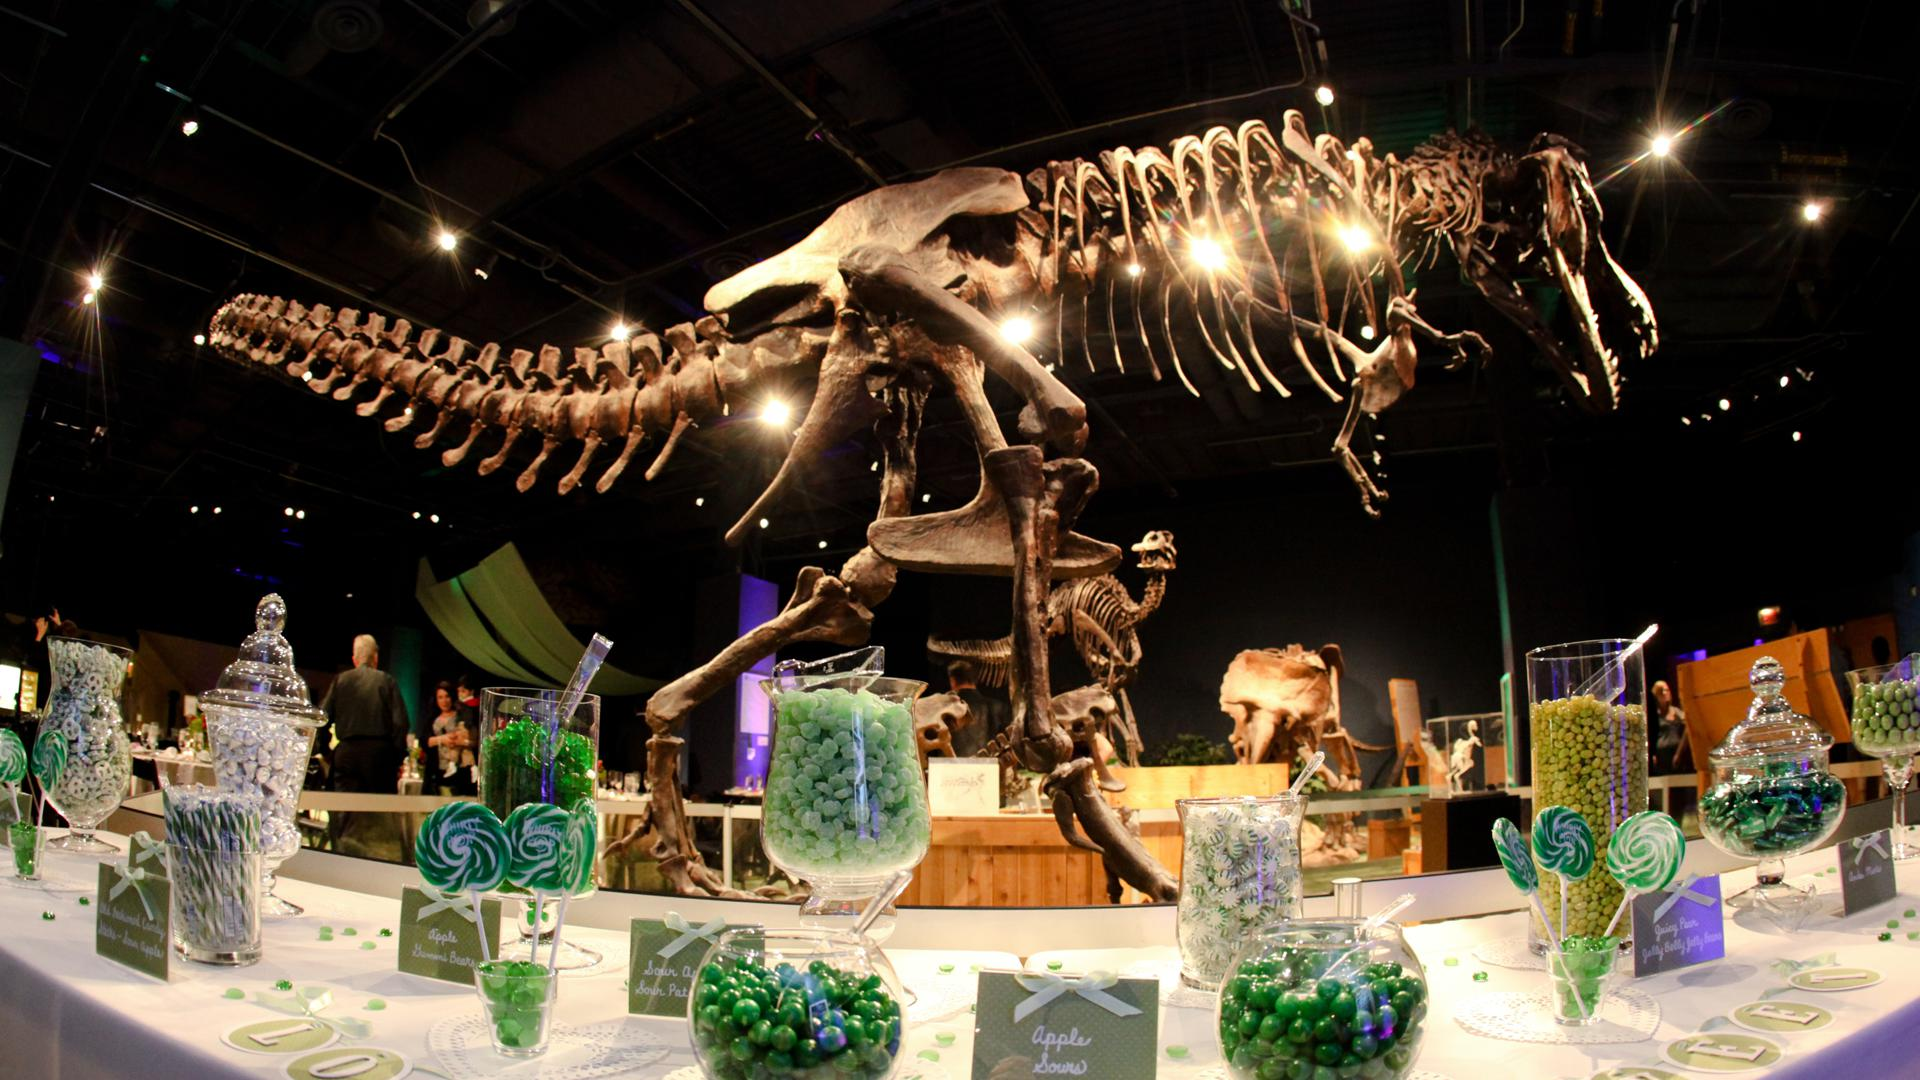 Orlando Science Center Orlando Tickets Hotels Packages